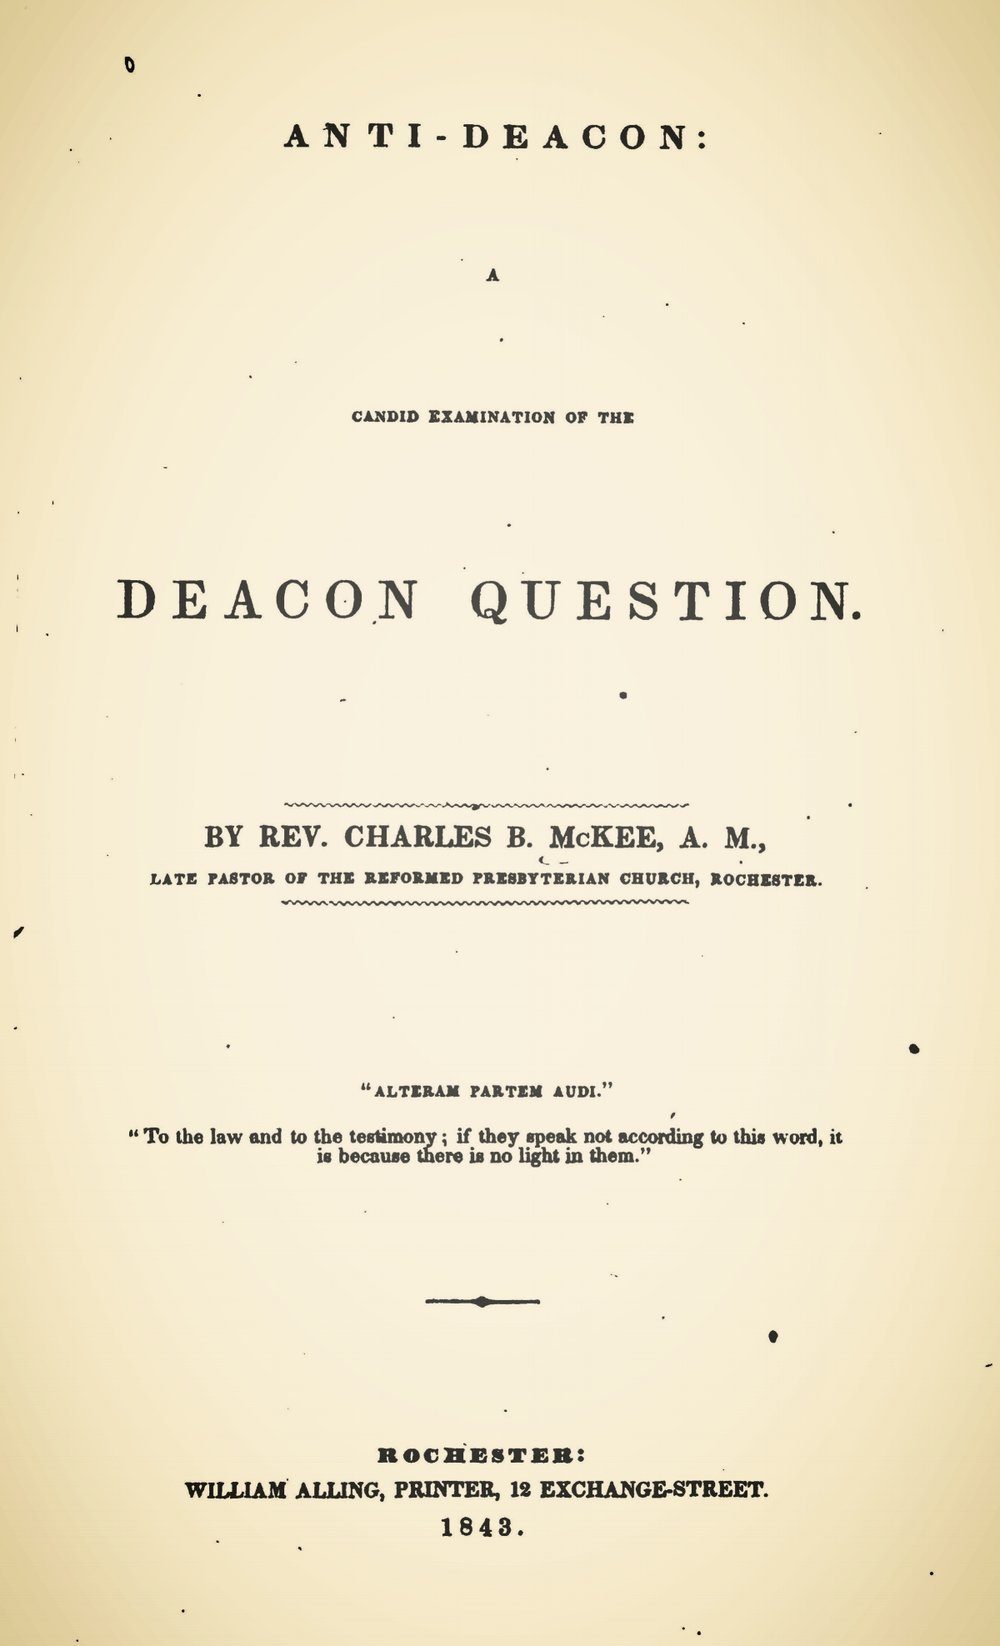 McKee, Charles Brown, Anti-Deacon Title Page.jpg